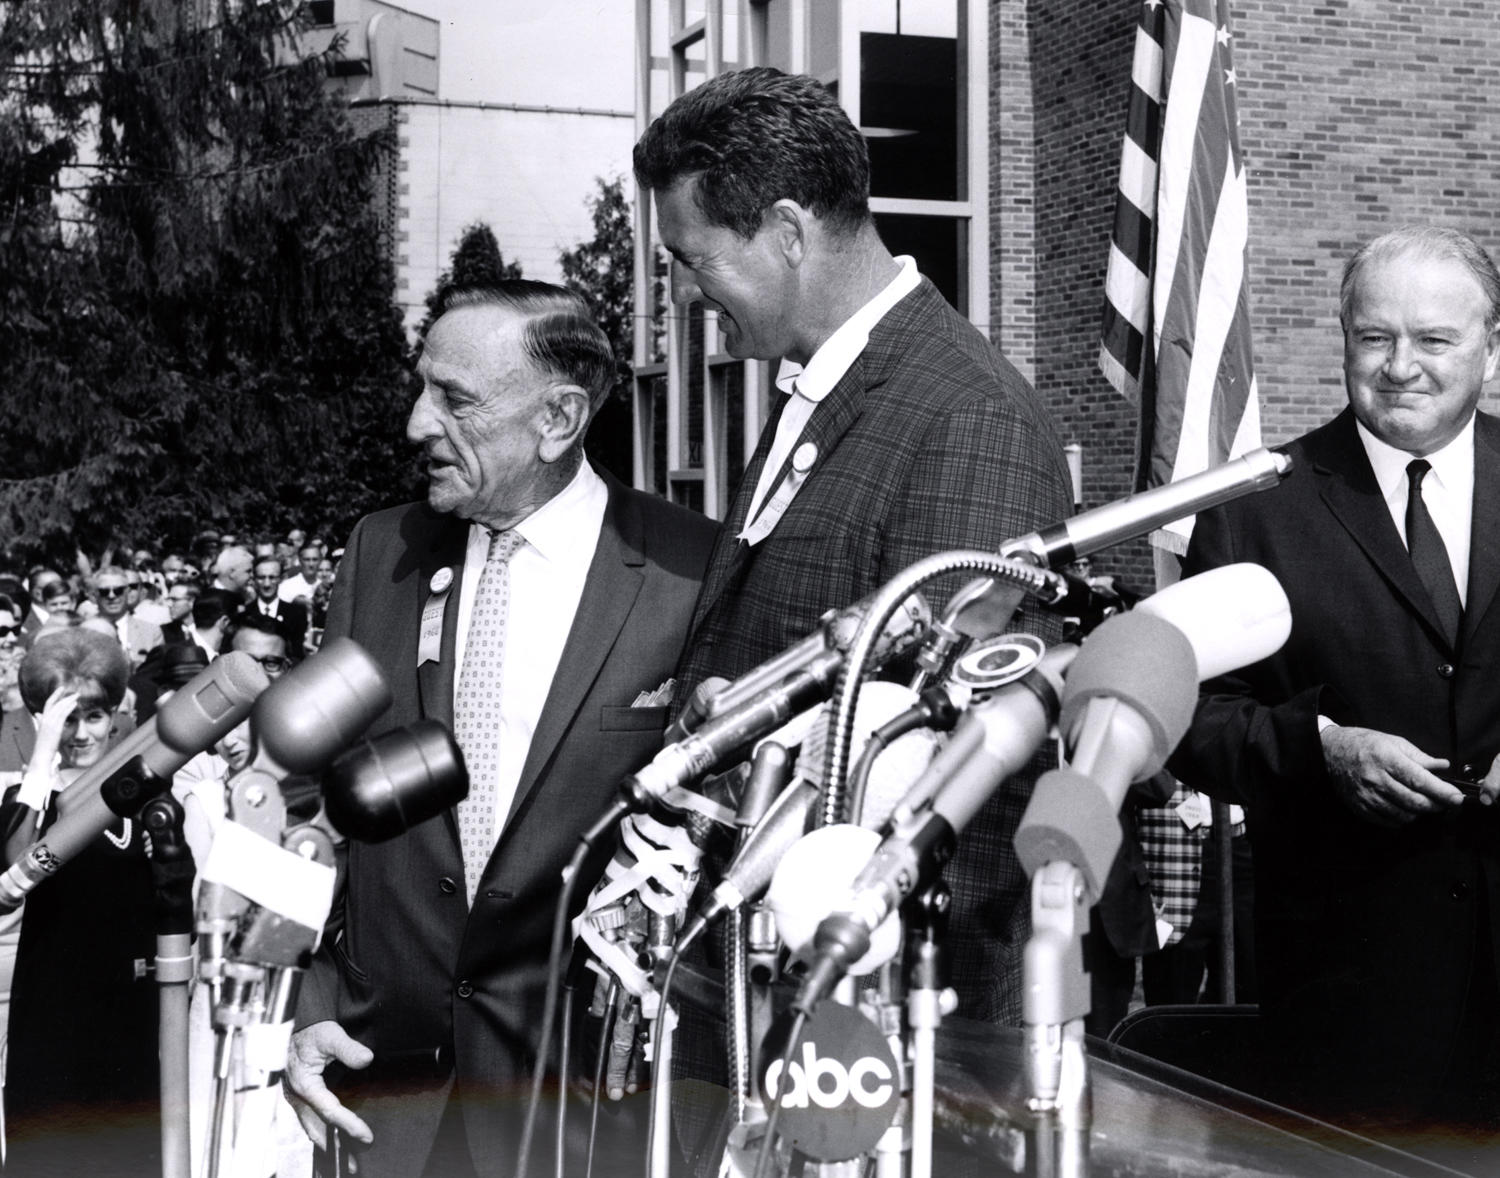 Casey Stengel (left) is one of 23 managers to be elected to the Hall of Fame, and Ted Williams (right) is one of 22 left fielders to be elected. Both were elected in 1966. (National Baseball Hall of Fame and Museum)